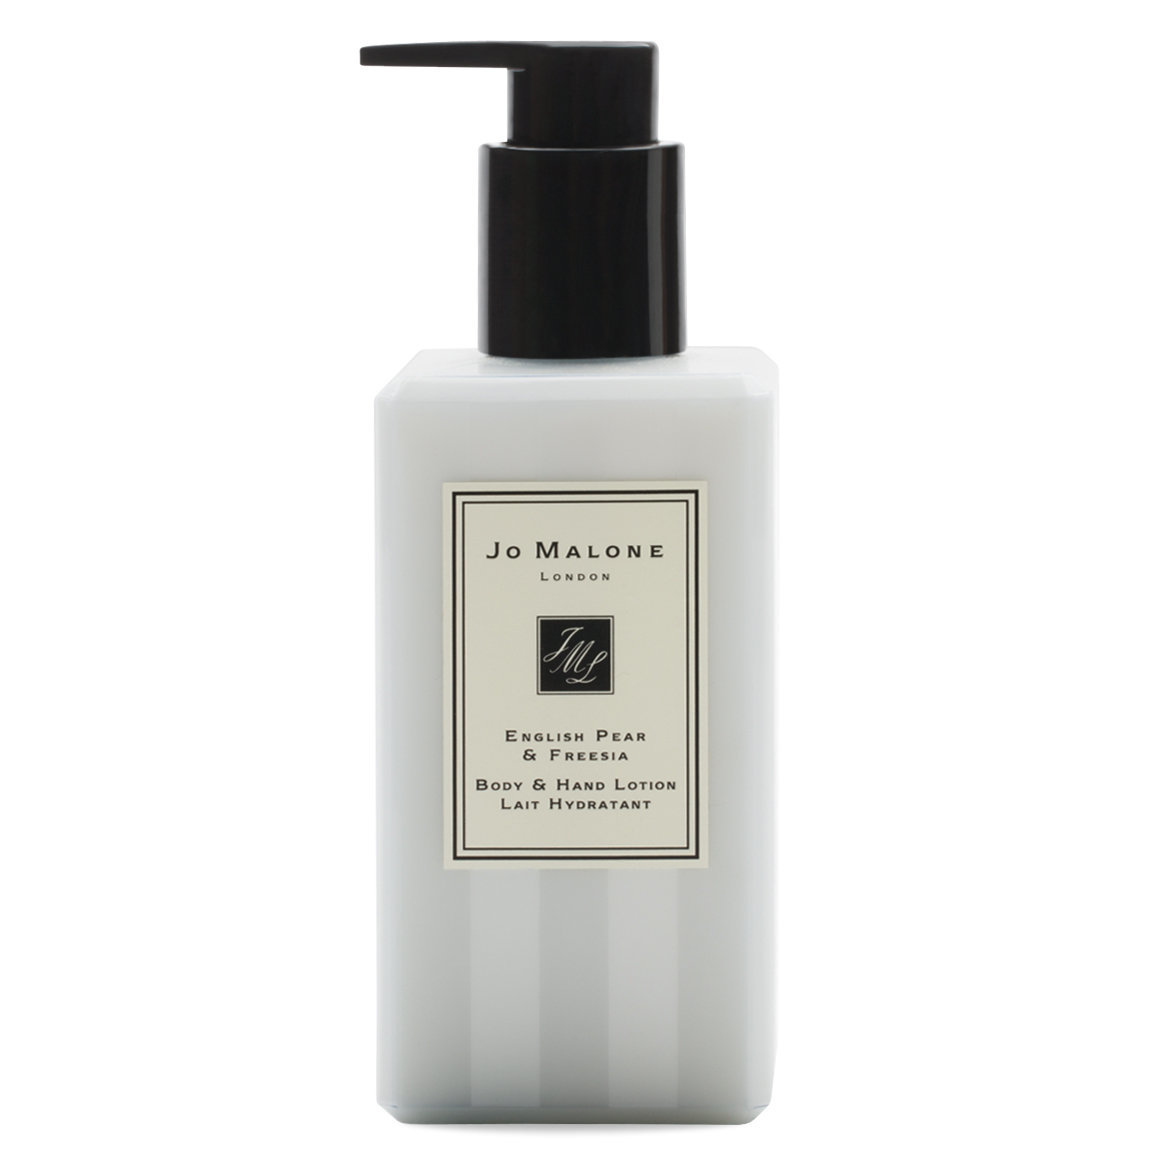 Jo Malone London English Pear & Freesia Body & Hand Lotion alternative view 1 - product swatch.